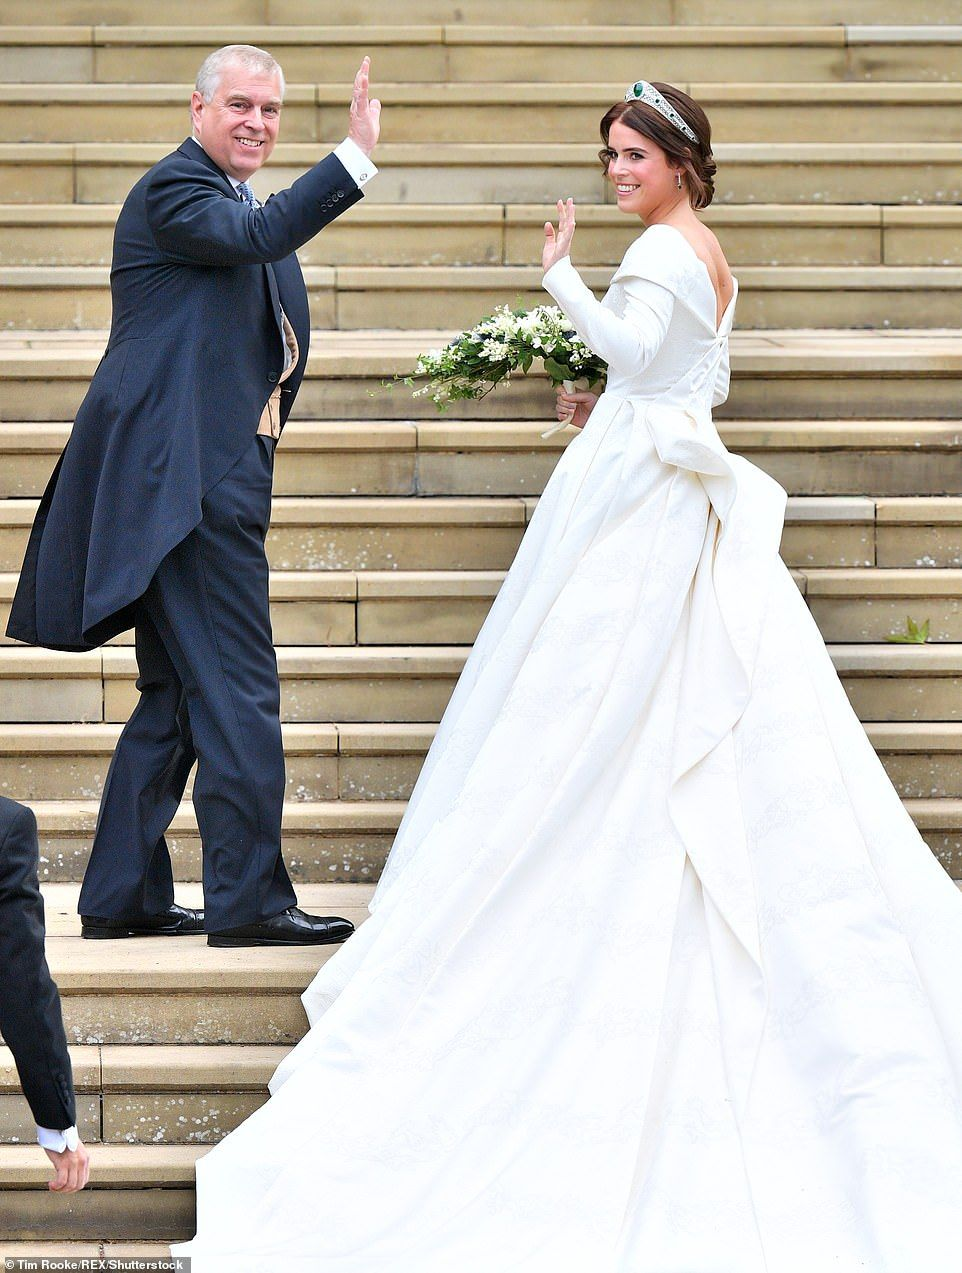 Sarah burton kate middleton wedding dress  Eugenie stuns in wedding dress  which also shows off surgery scars